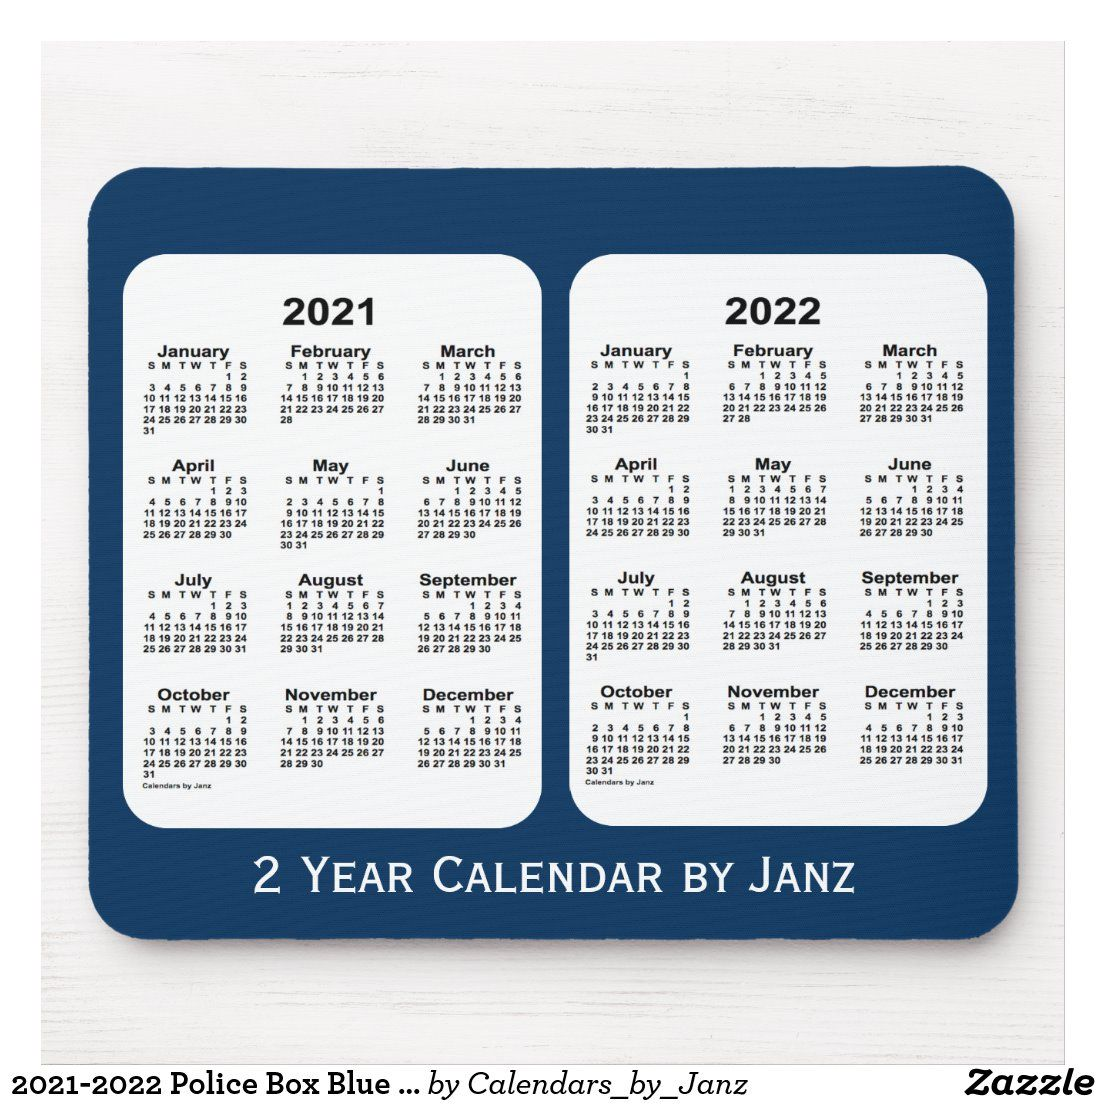 20212022 Police Box Blue 2 Year Calendar by Janz Mouse